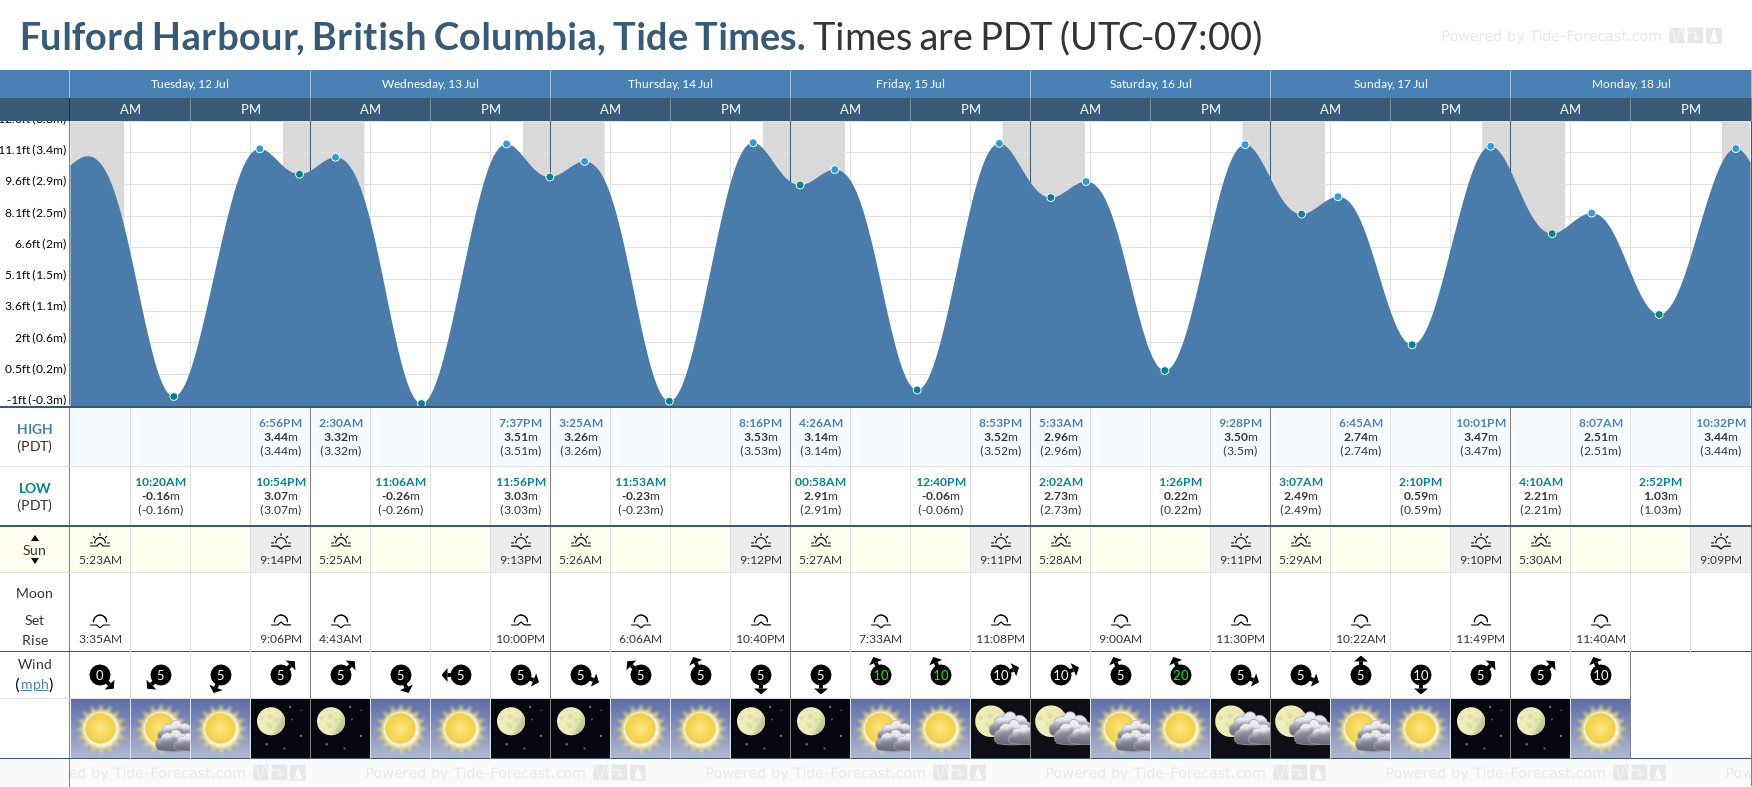 Fulford Harbour, British Columbia Tide Chart including high and low tide tide times for the next 7 days